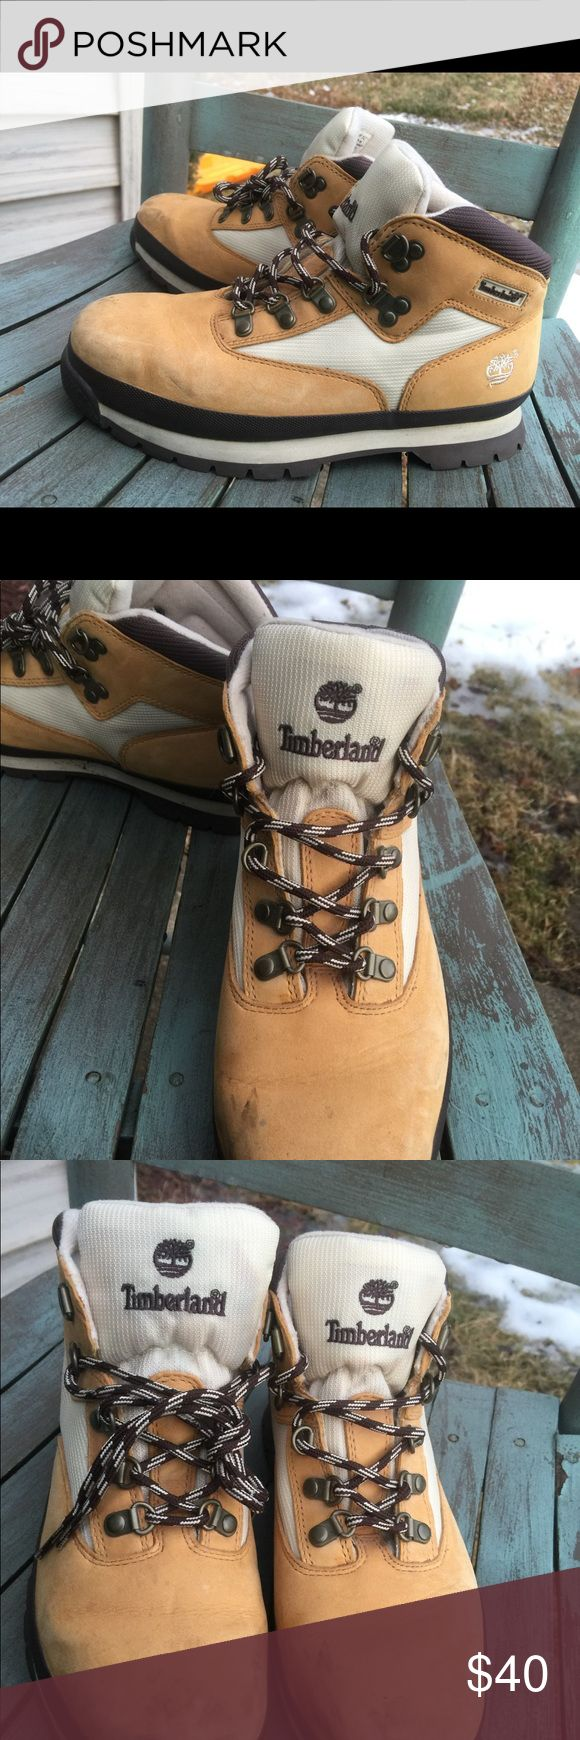 Big boy Timberland Boots Tan & Brown Leather 5M Big boy Timberland Boots Tan & Brown Leather 5M. Some minor spots. Great Condition Timberland Shoes Boots